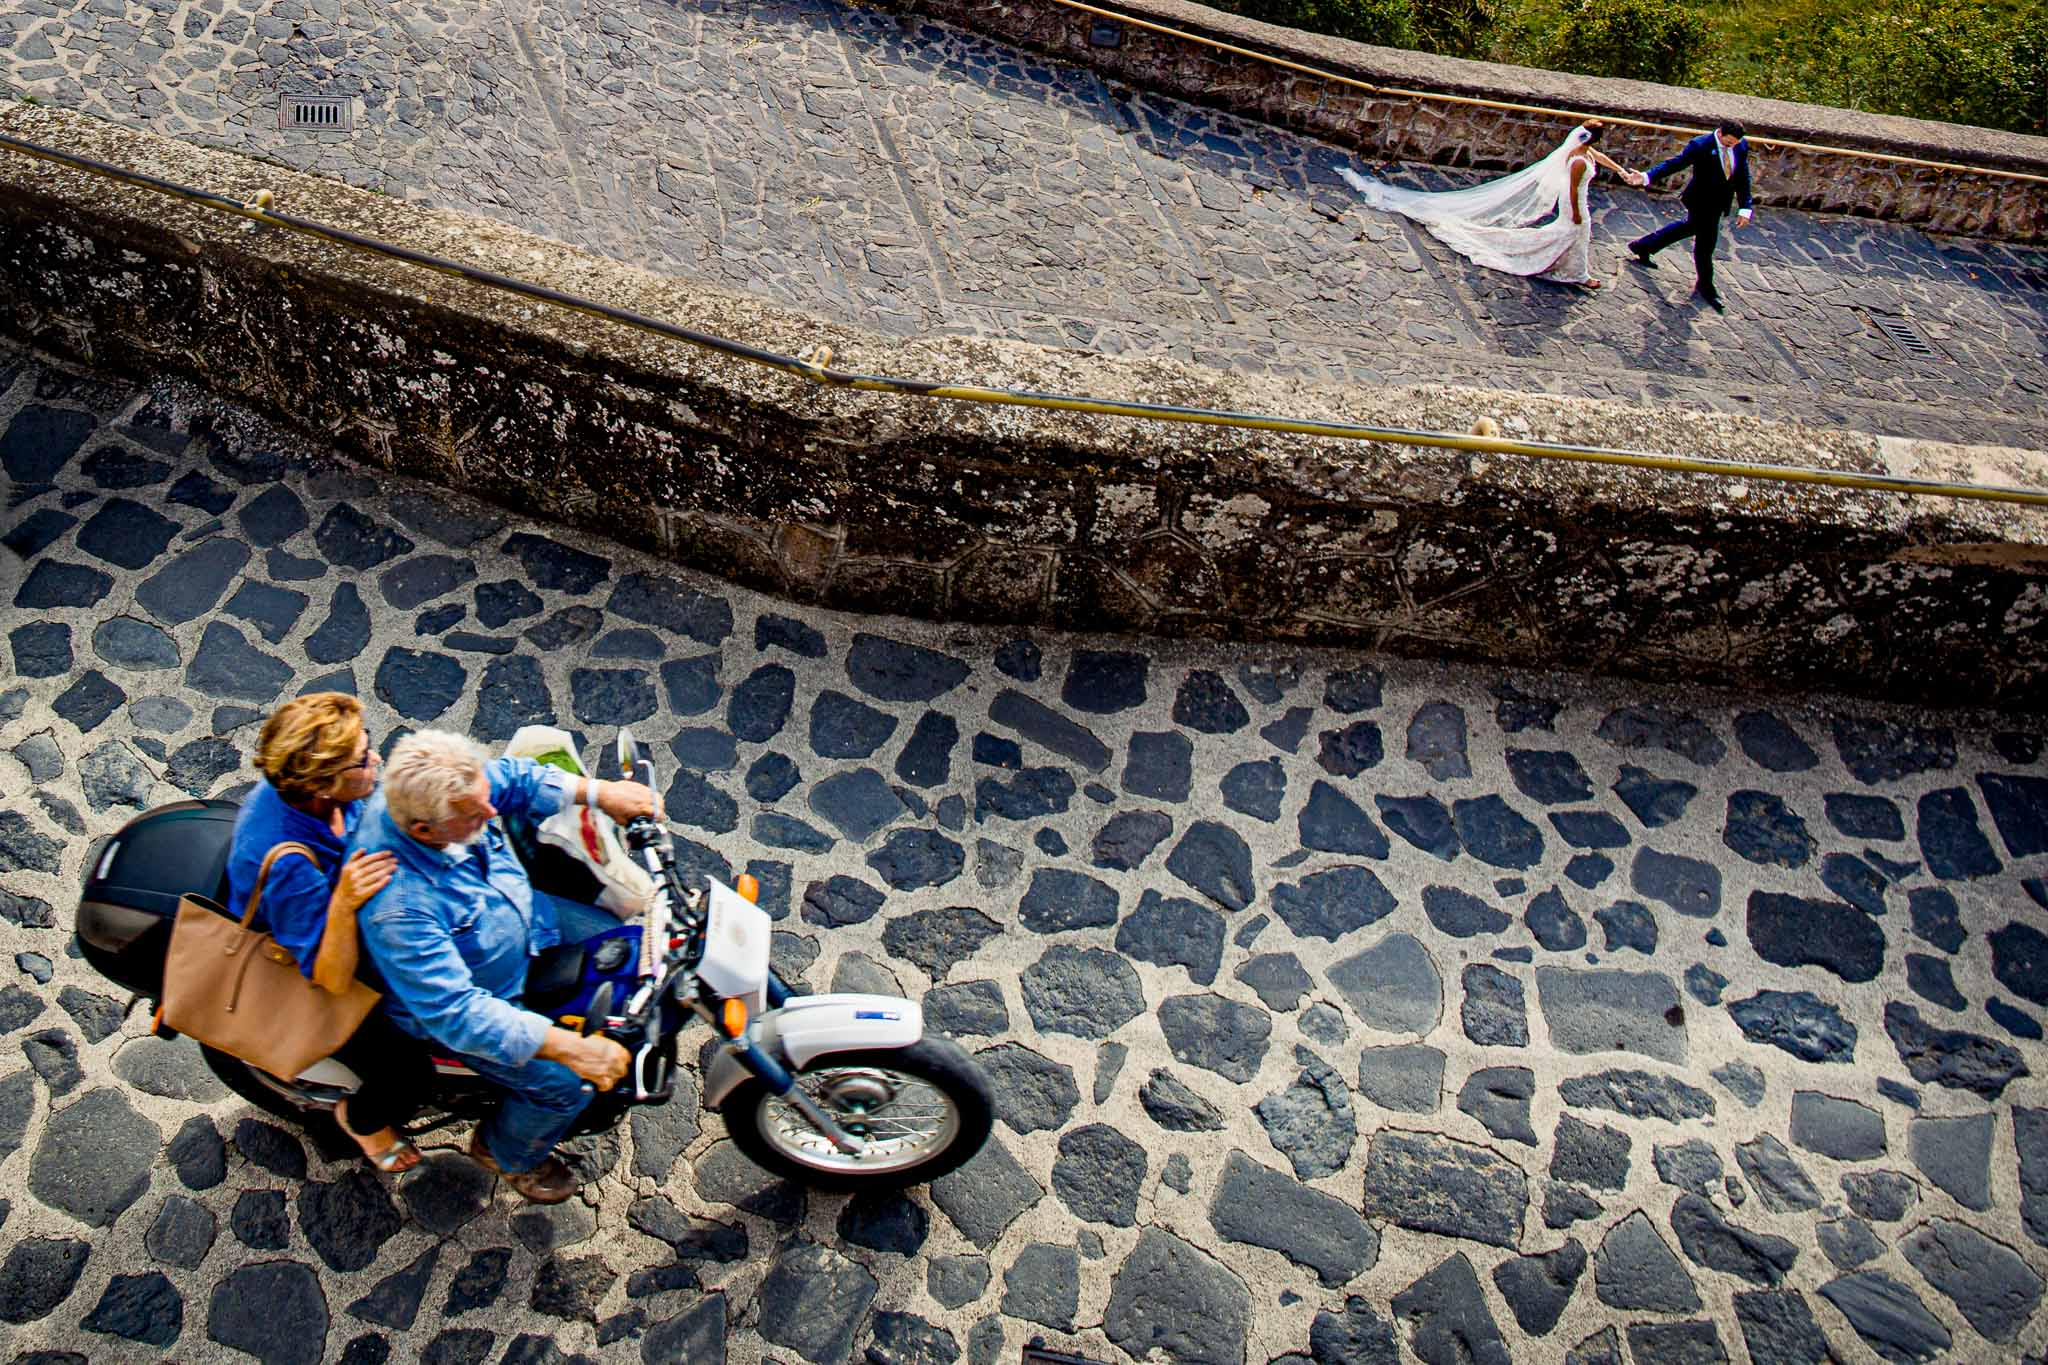 Bride and groom walking up path leaving Bagnoregio Italy with couple on motorcycle.